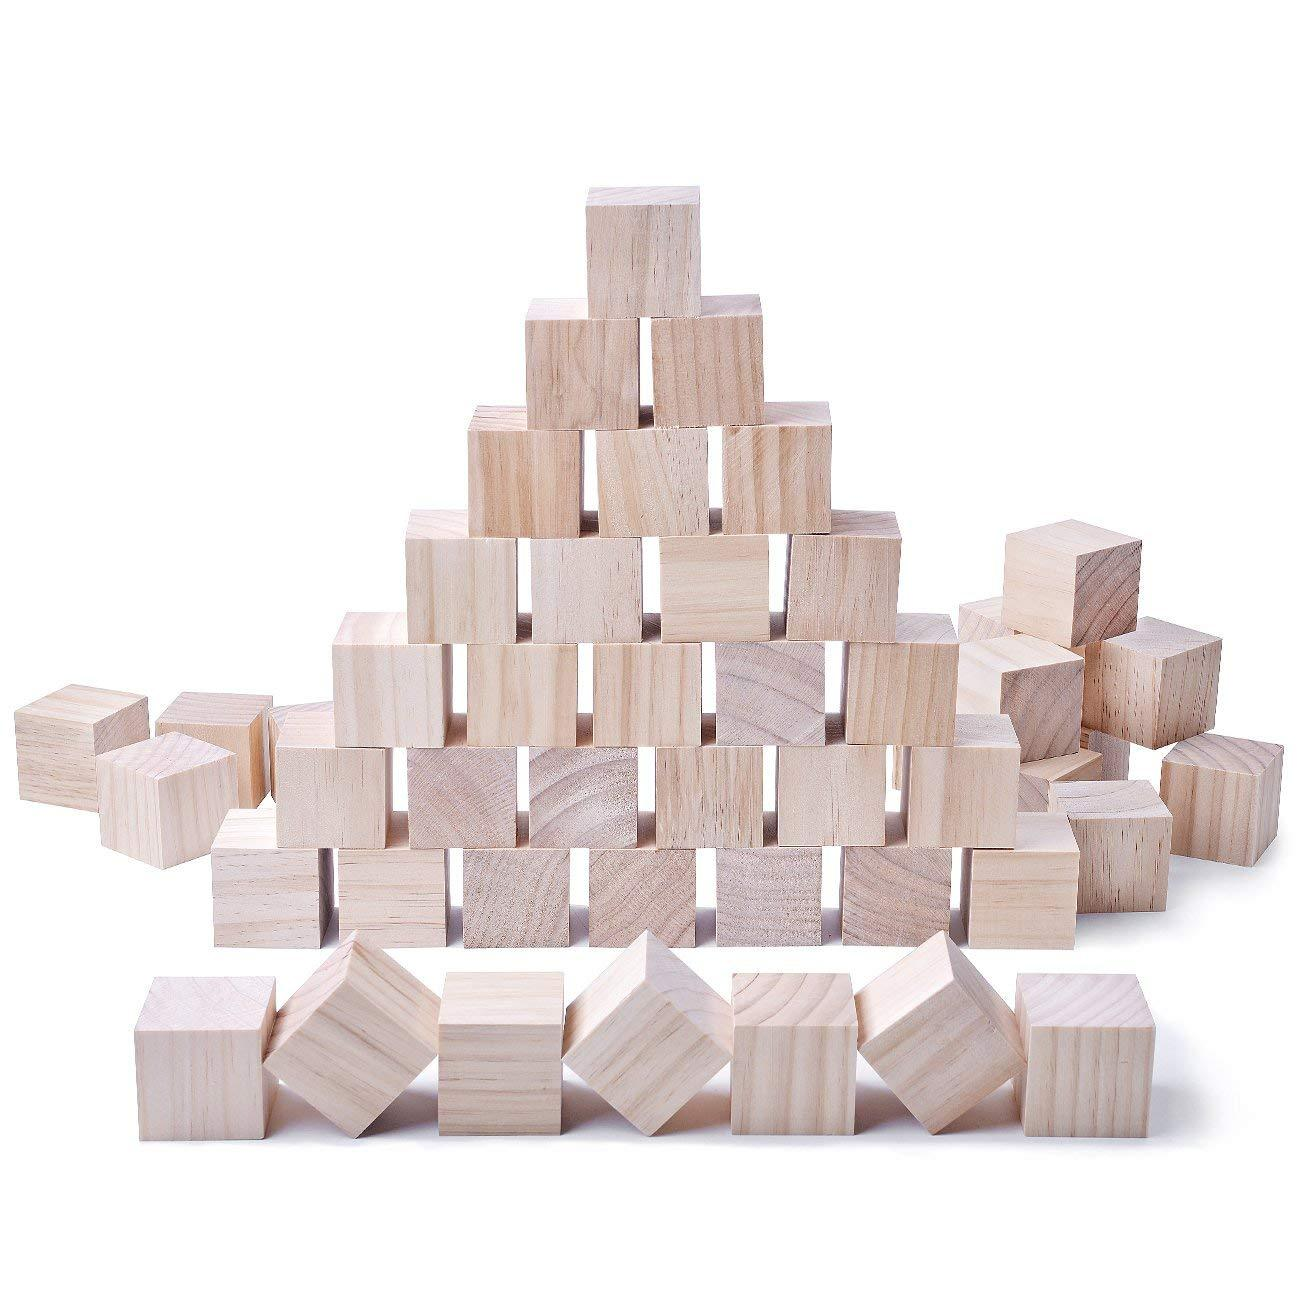 2Inch Solid Wood Craft Blocks 24PCS